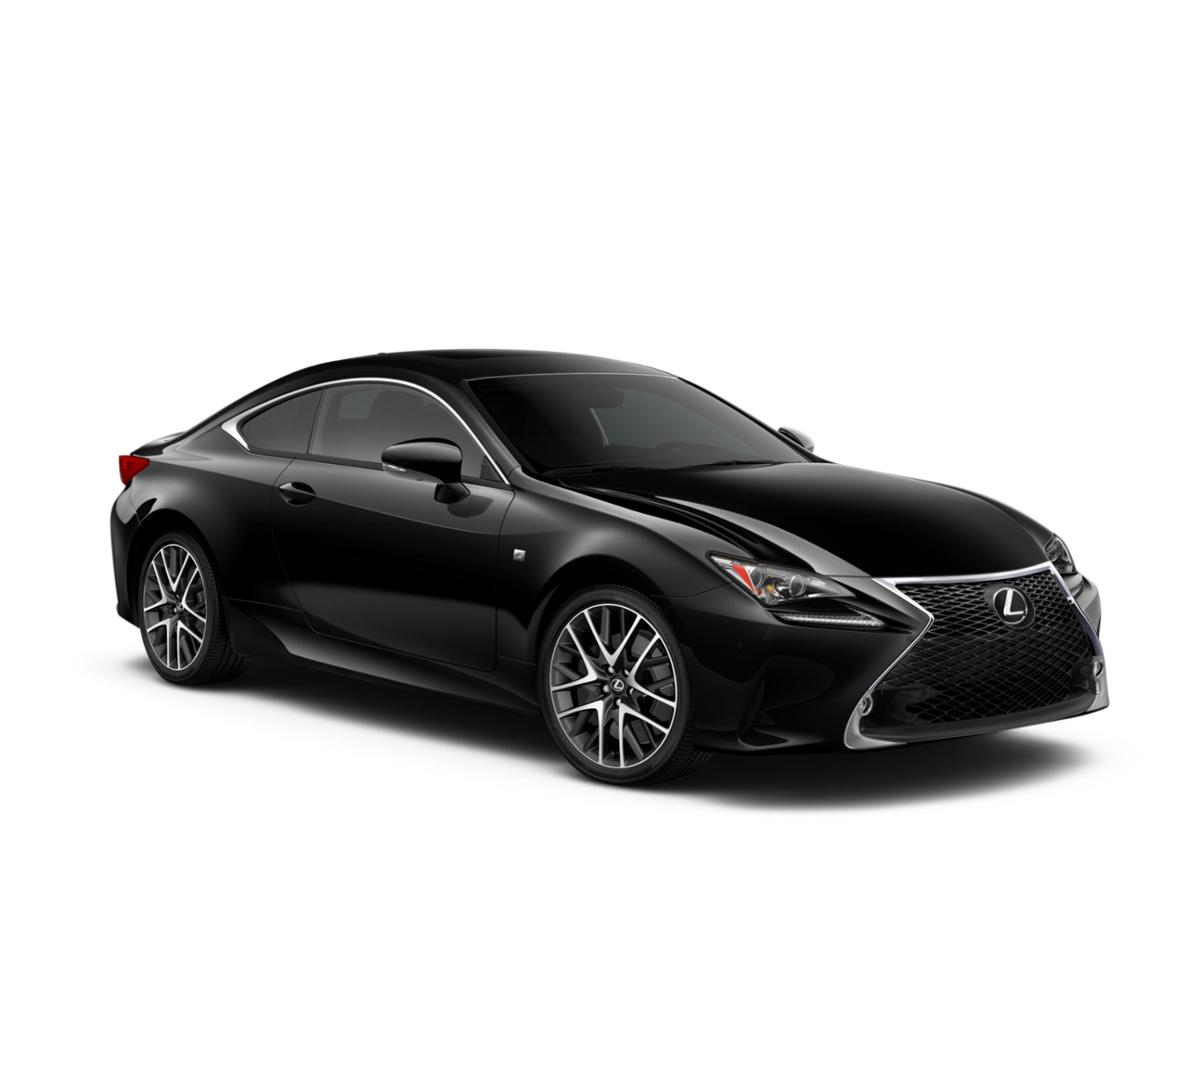 Orlando Used Cars For Sale: 2016 Obsidian Lexus RC 300: New Car For Sale In East Haven